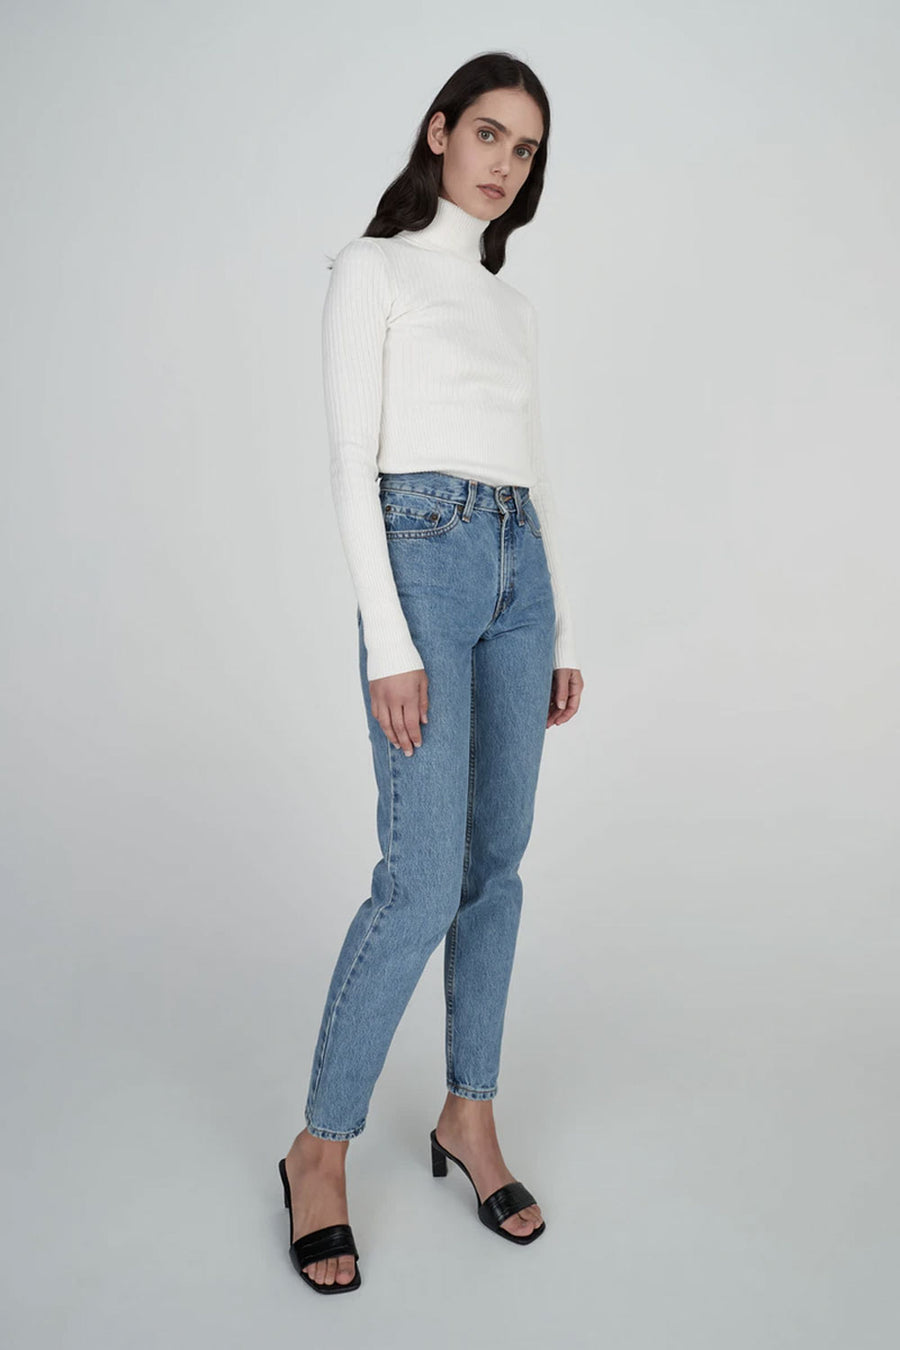 Jaclyn Cashmere Turtleneck | White | Tops NZ | HANSEN & GRETEL NZ | Black Box Boutique Auckland | Womens Fashion NZ